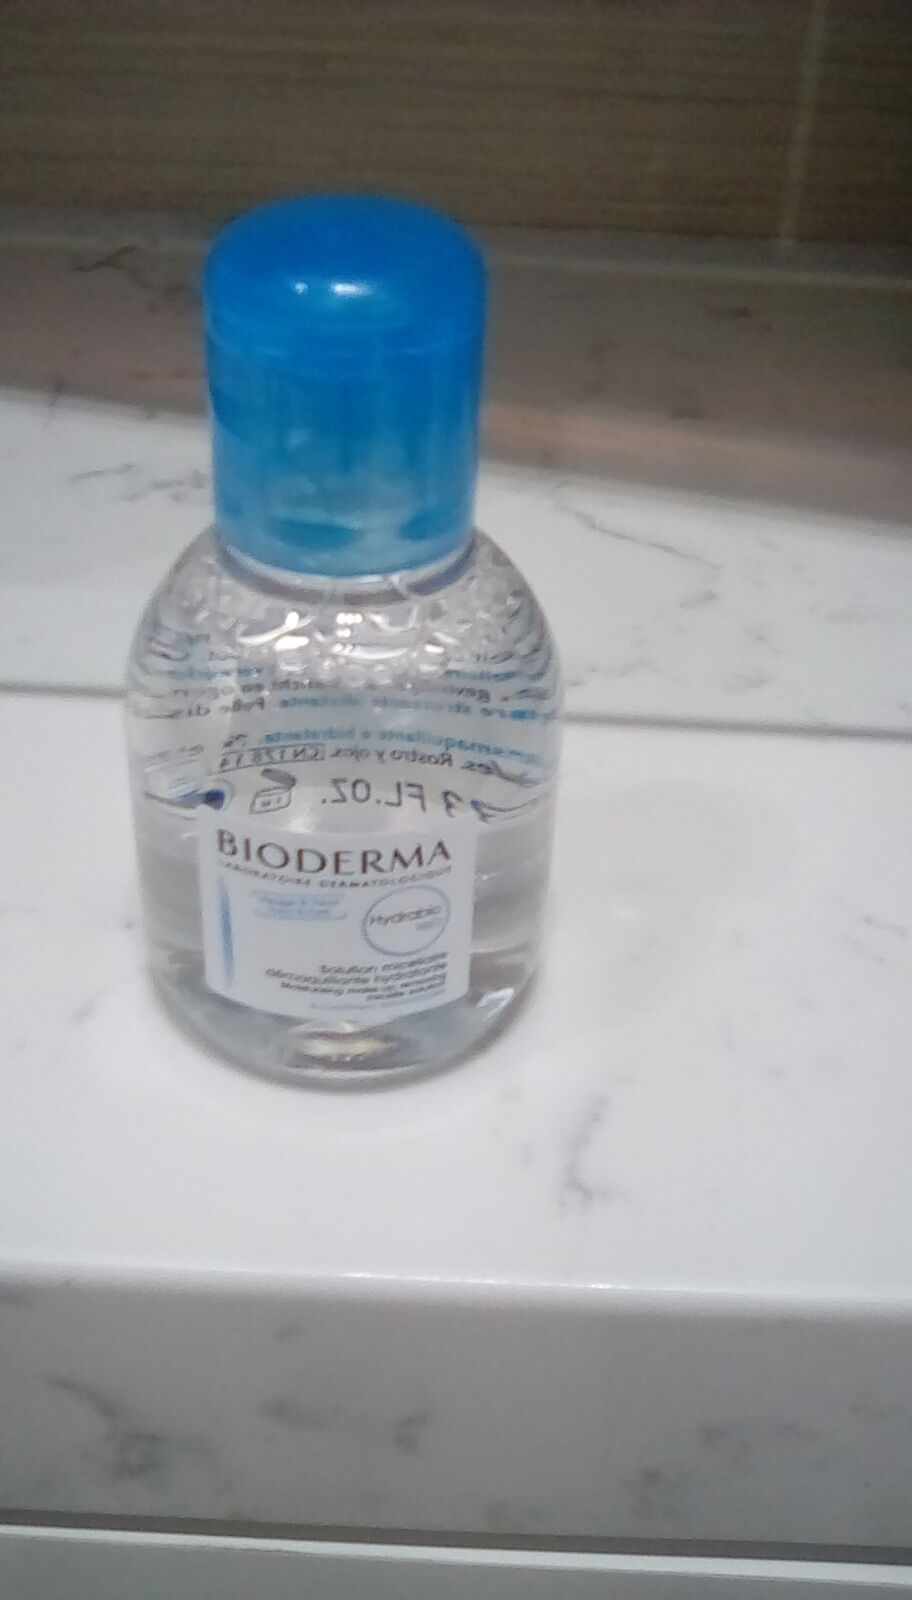 Primary image for BioDerma Hydrabio H2O Moisturizing Make-Up Removing Micelle Solution 3.33oz